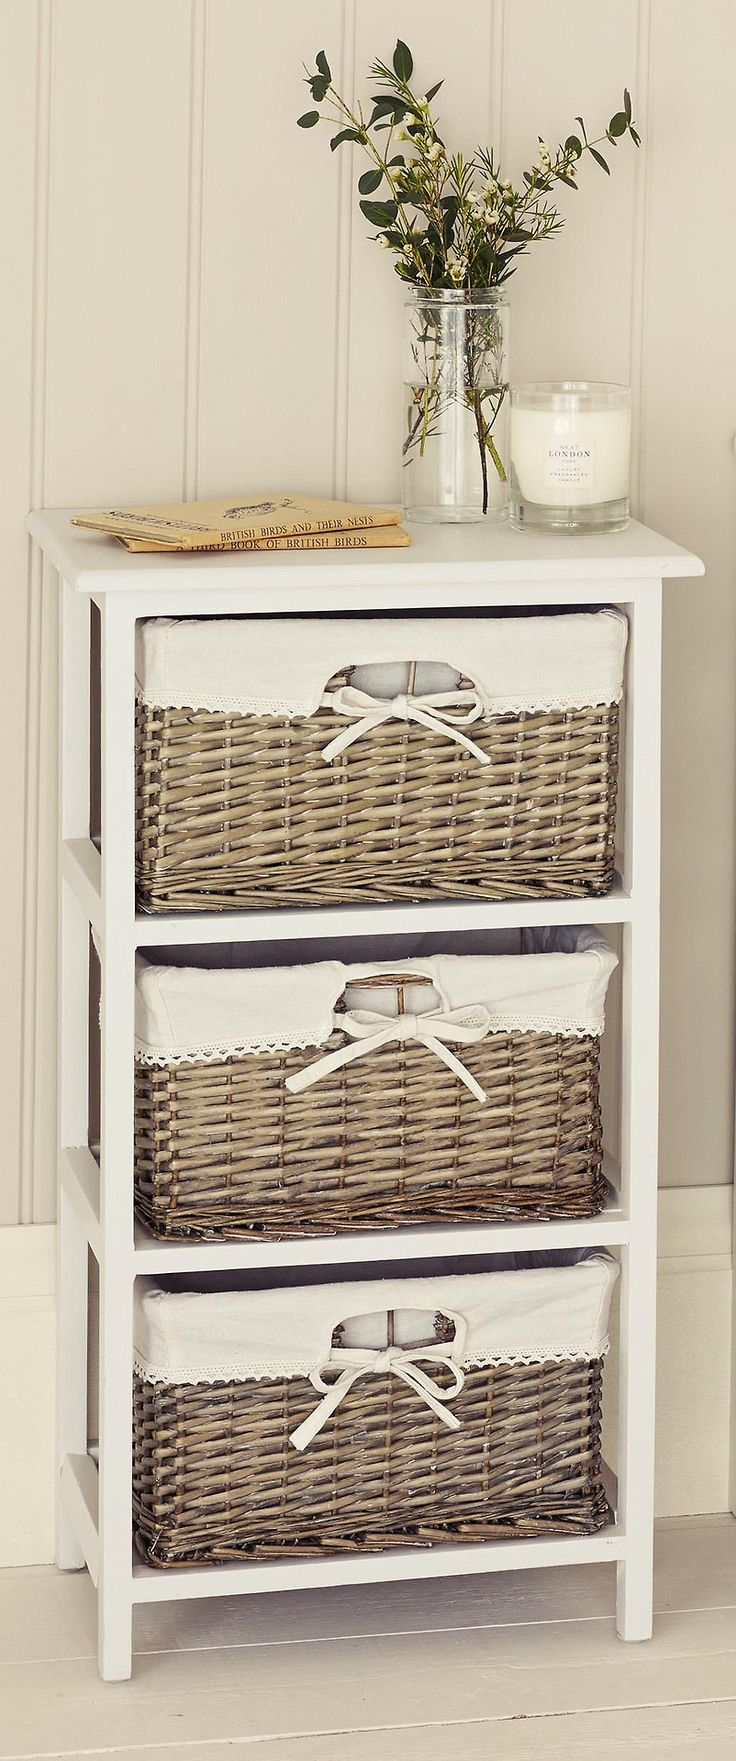 Best 25+ Bathroom storage units ideas on Pinterest | Crate crafts ...